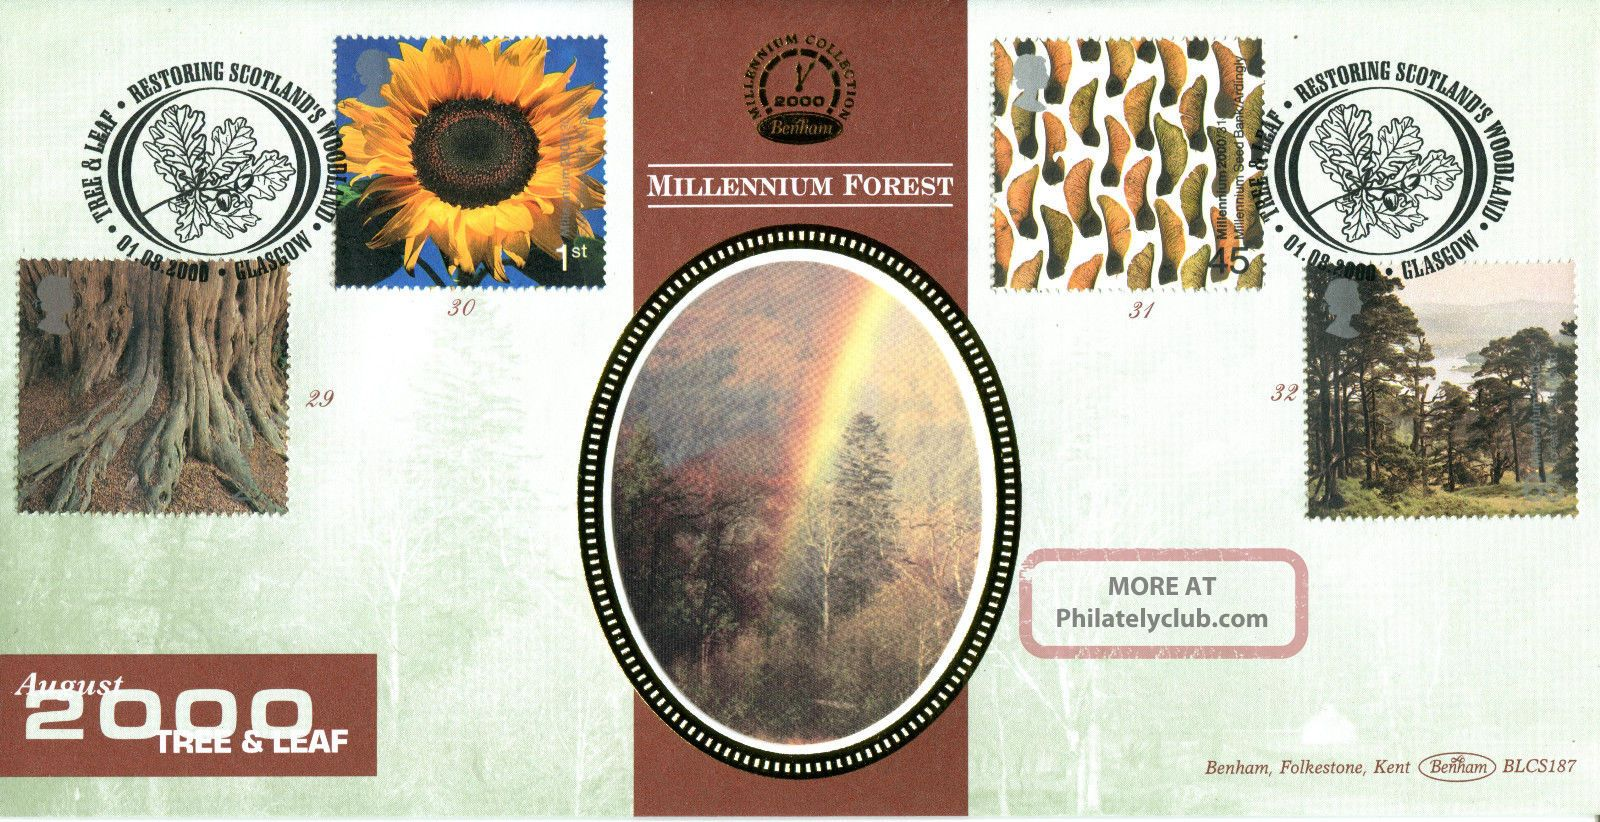 1 August 2000 Tree & Leaf Benham Blcs 187 First Day Cover Glasgow Shs Topical Stamps photo